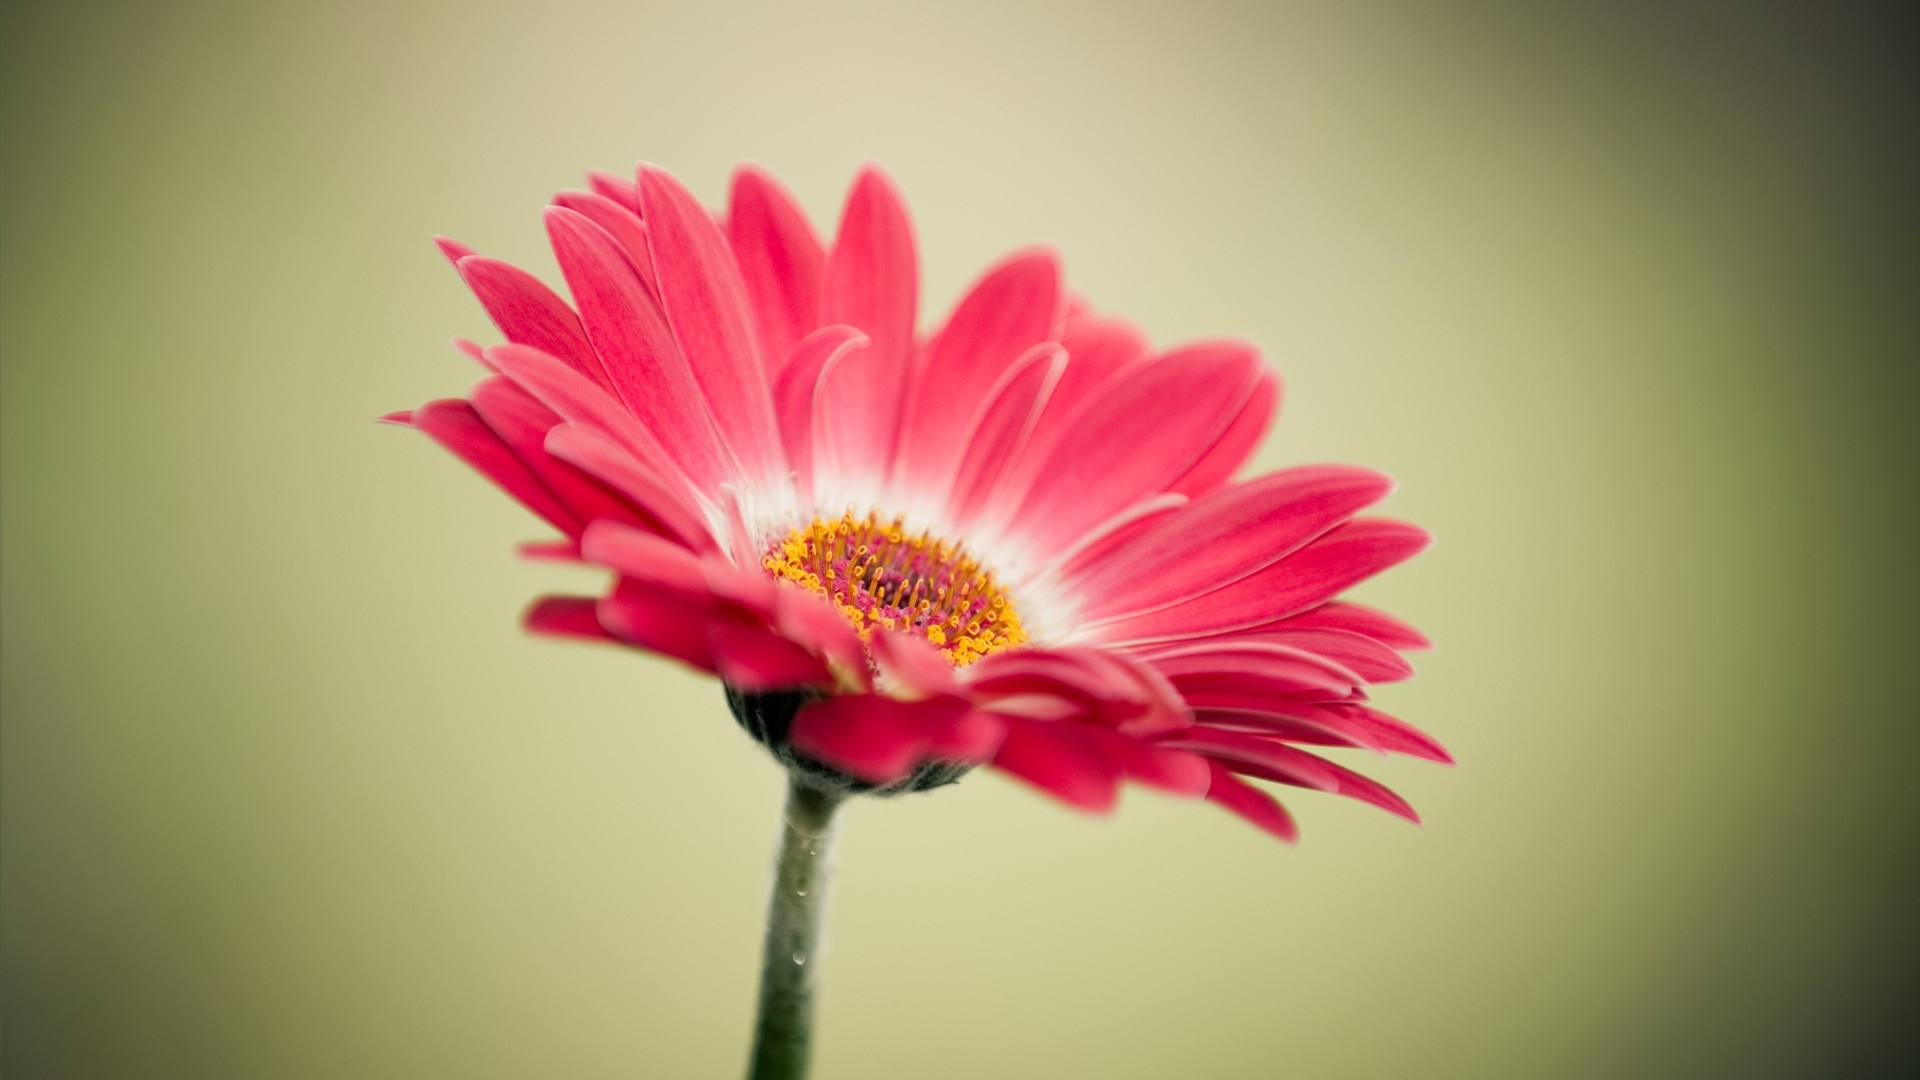 30 Beautiful Flower Images Free To Download